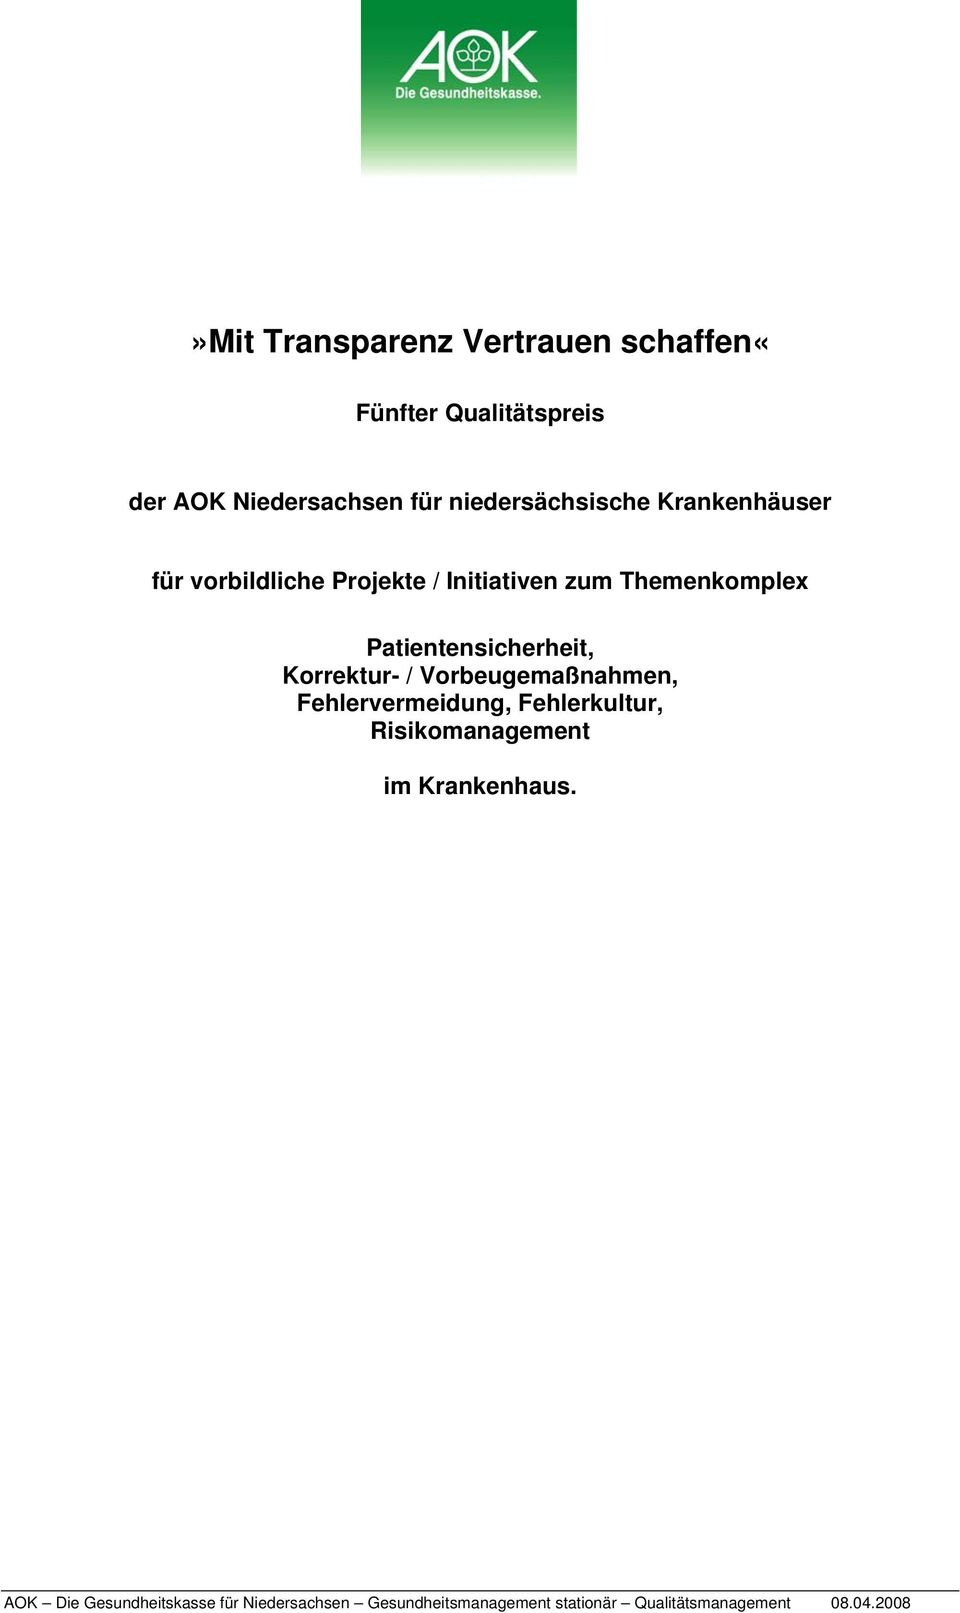 Projekte / Initiativen zum Themenkomplex Patientensicherheit, Korrektur-